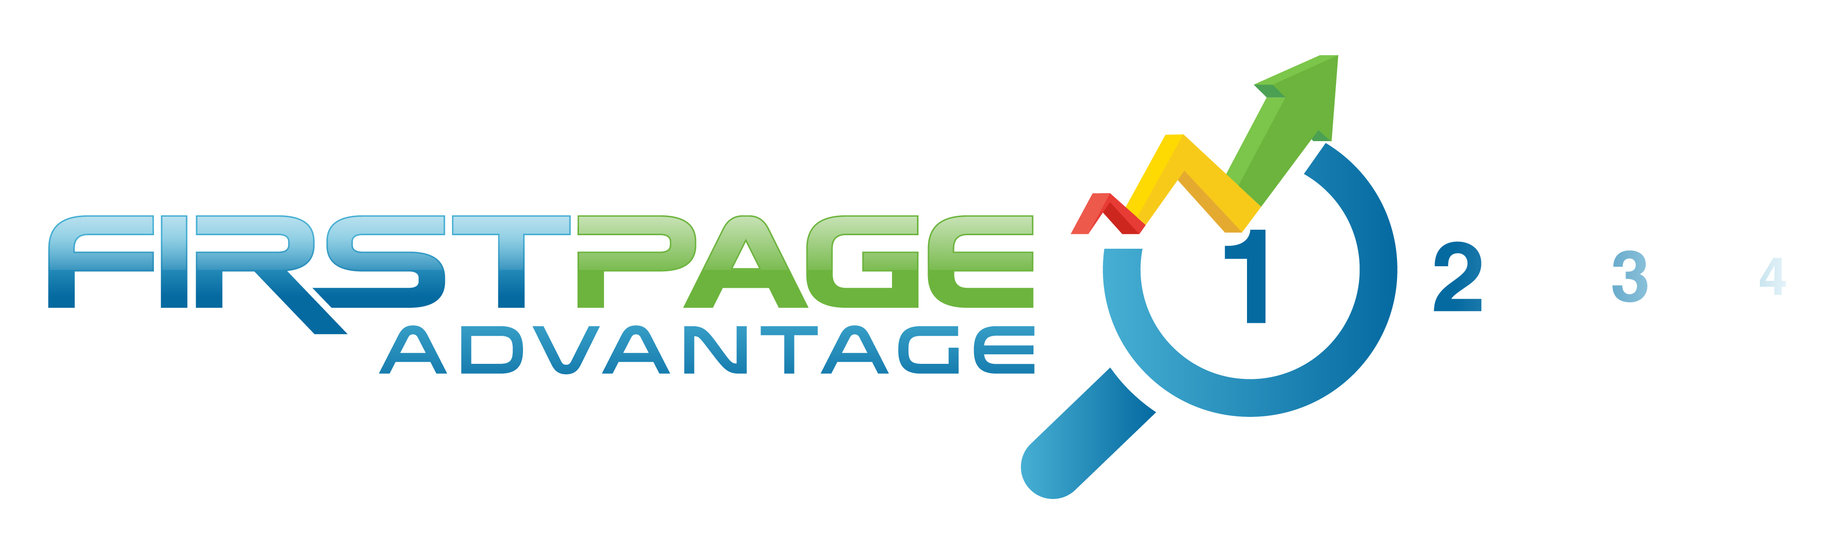 Chicago SEO Agency -